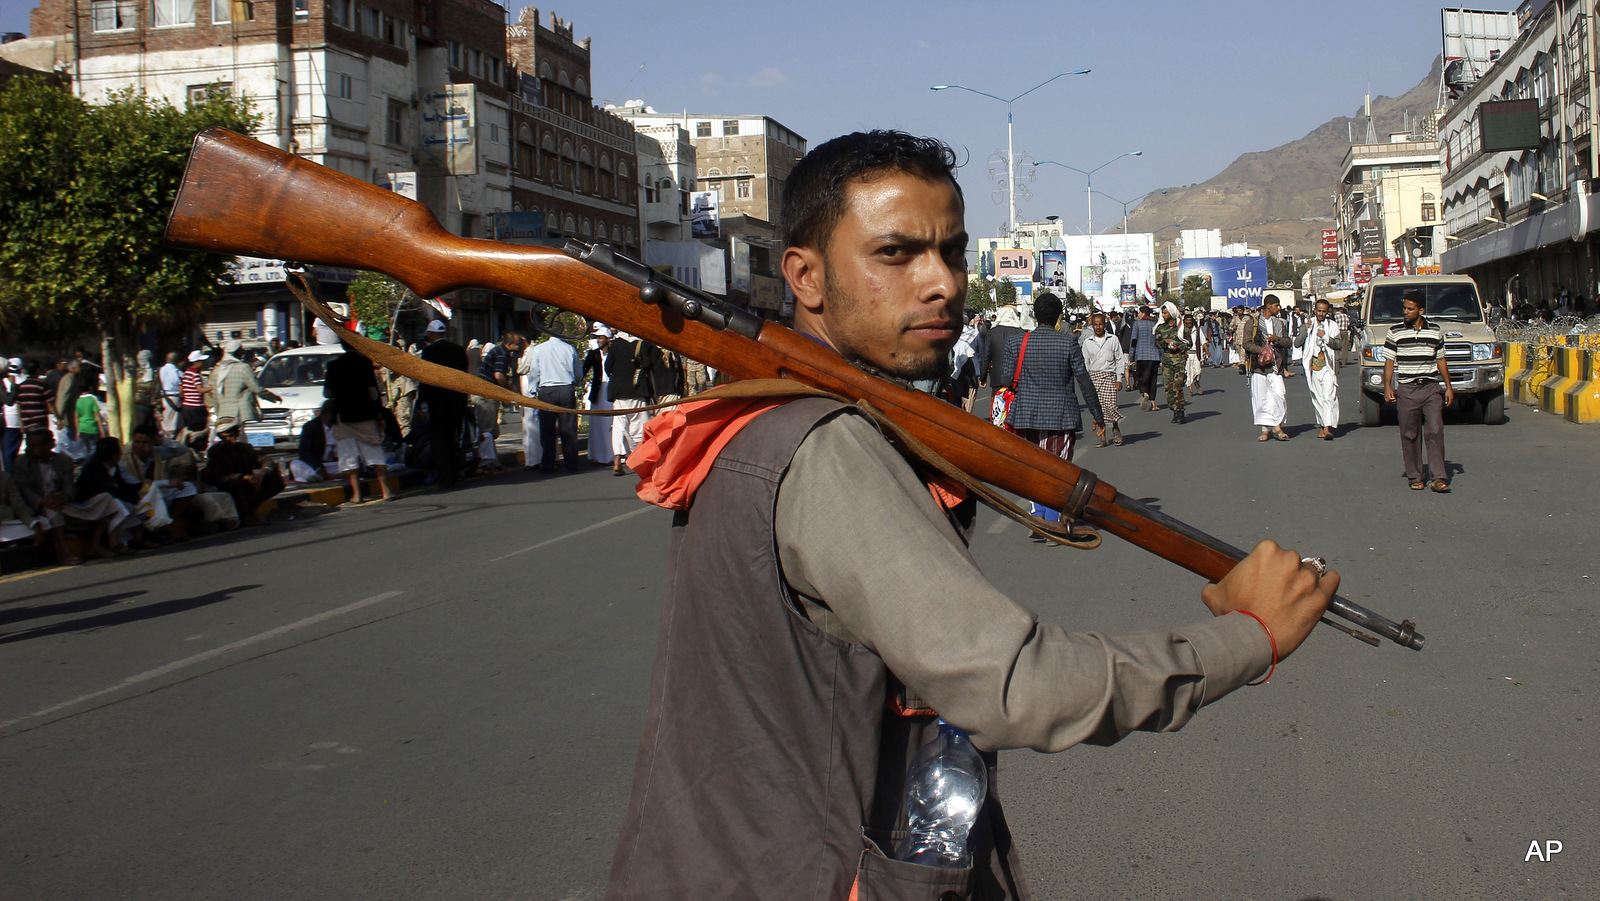 Yemen Timeline: From January 2011 To March 2015